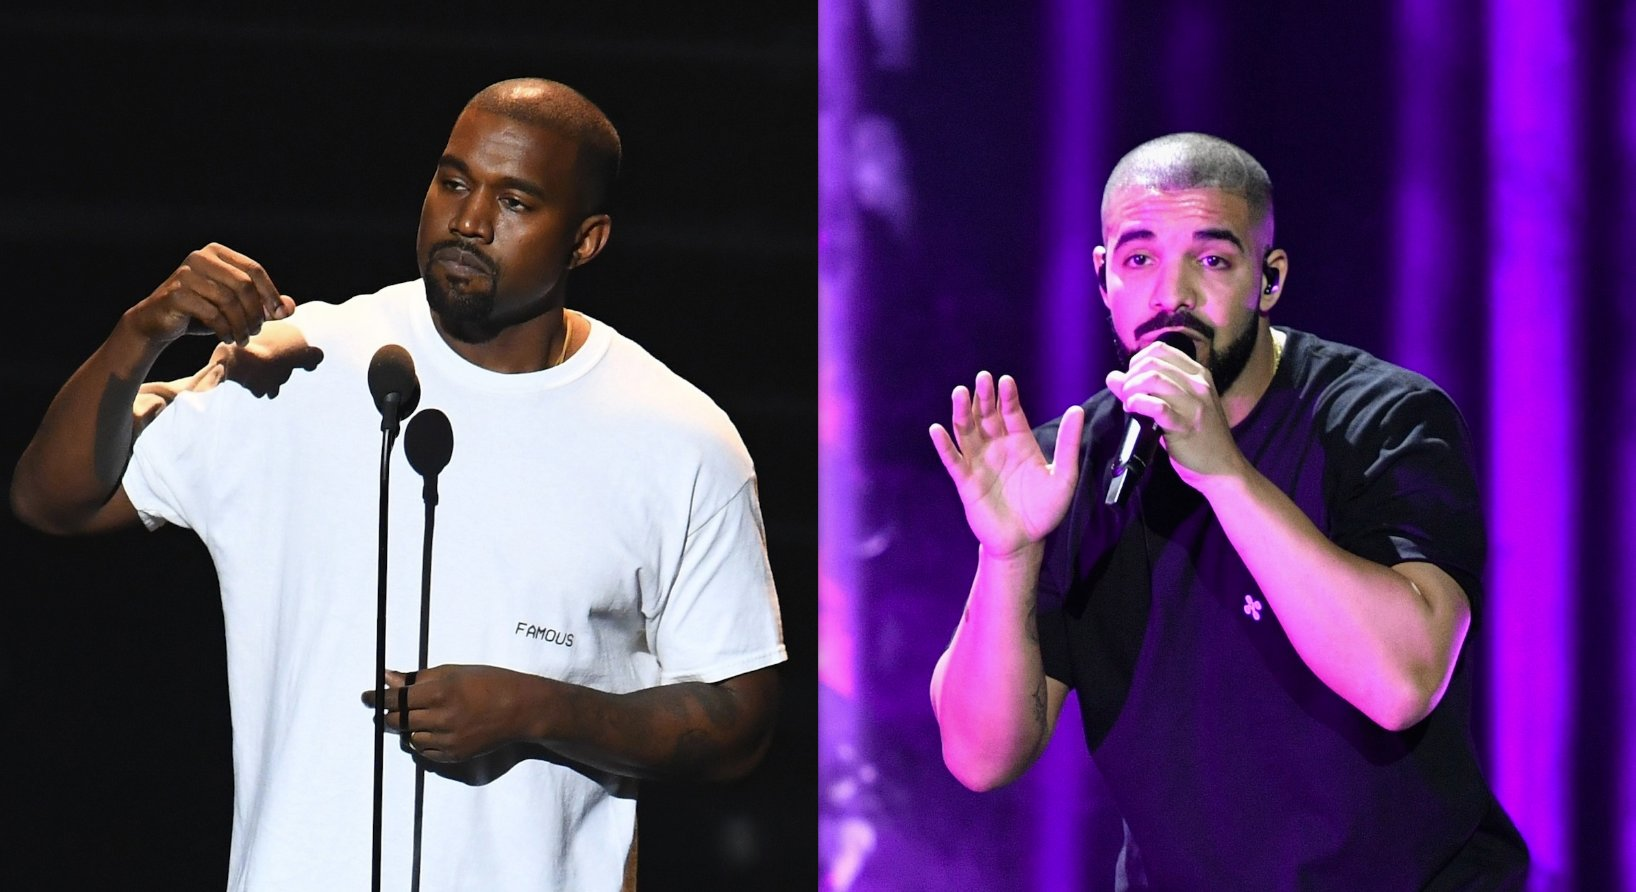 Kanye West and Drake. (Photos by Jewel Samad and Mike Windle/Getty Images)